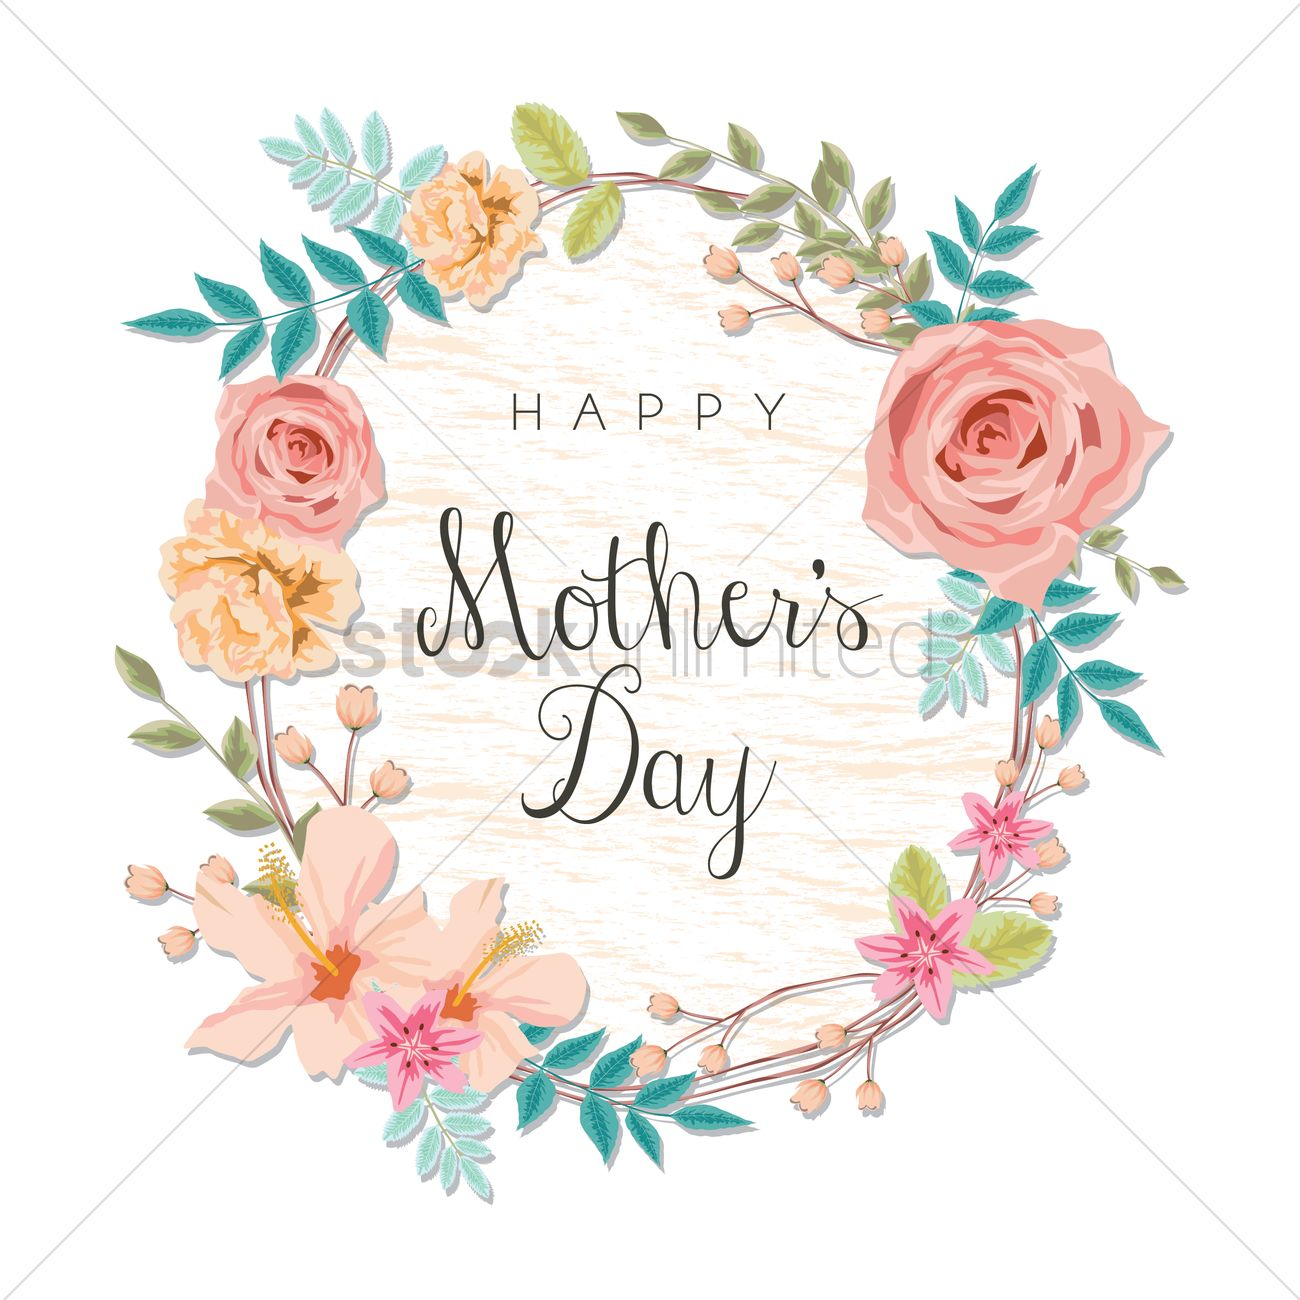 Happy mothers day card vector image 1807838 stockunlimited happy mothers day card vector graphic kristyandbryce Image collections